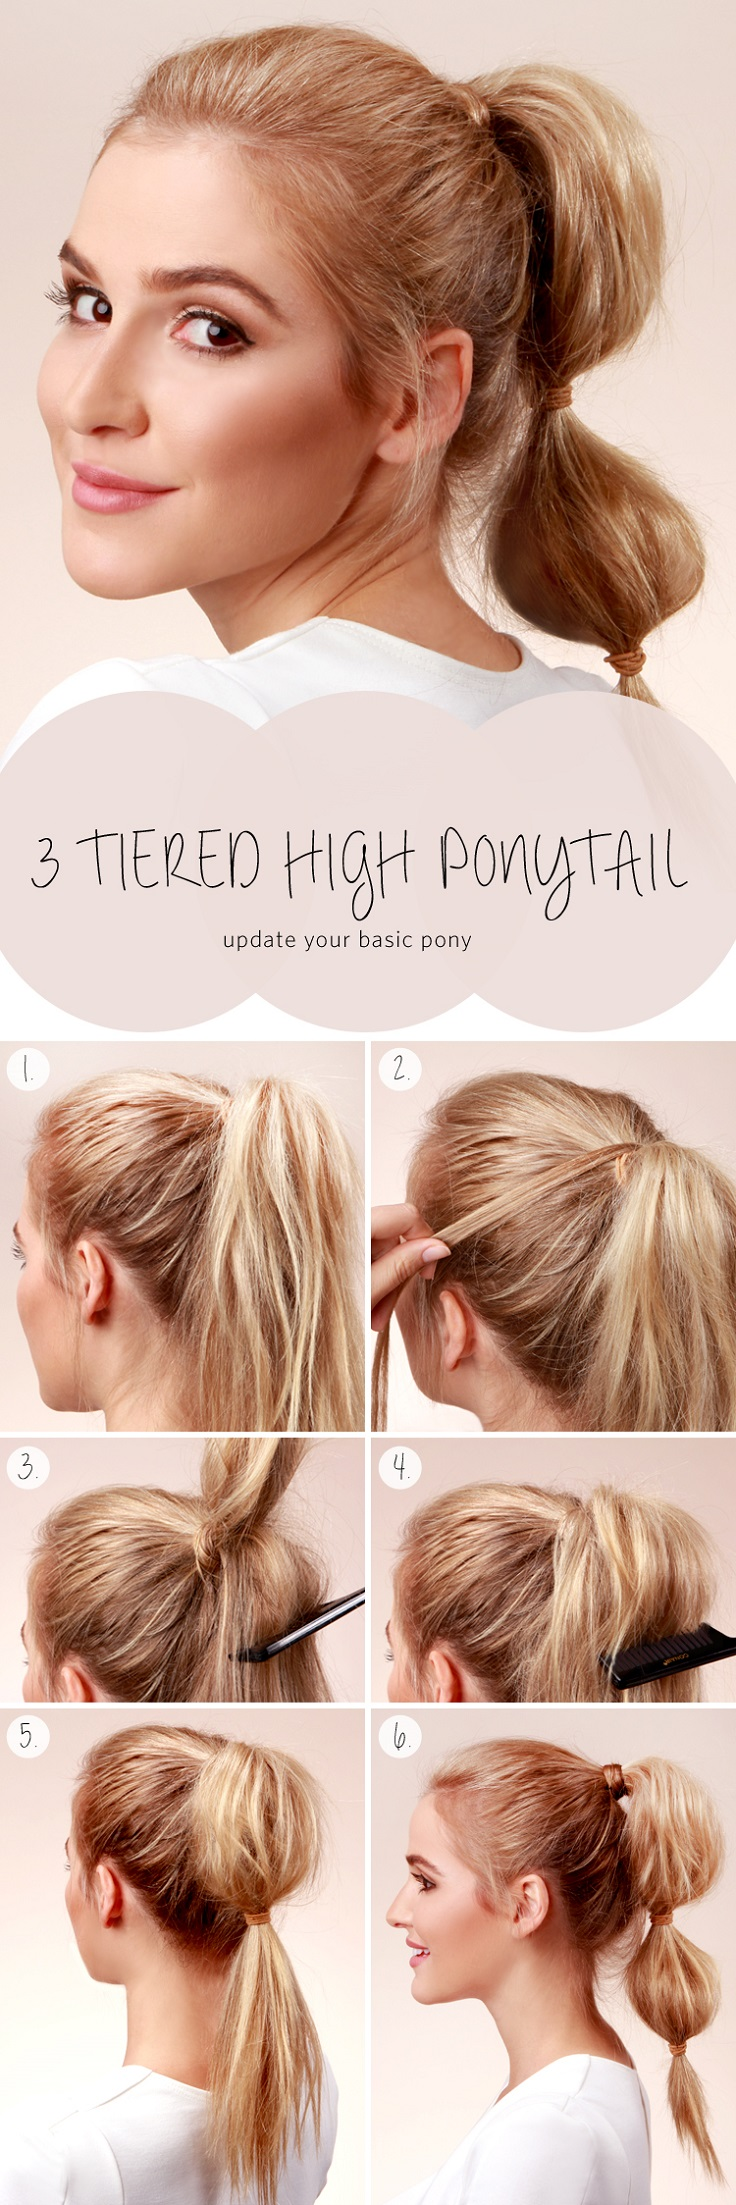 top 10 beautiful and easy ponytail hairstyles | all about beauty